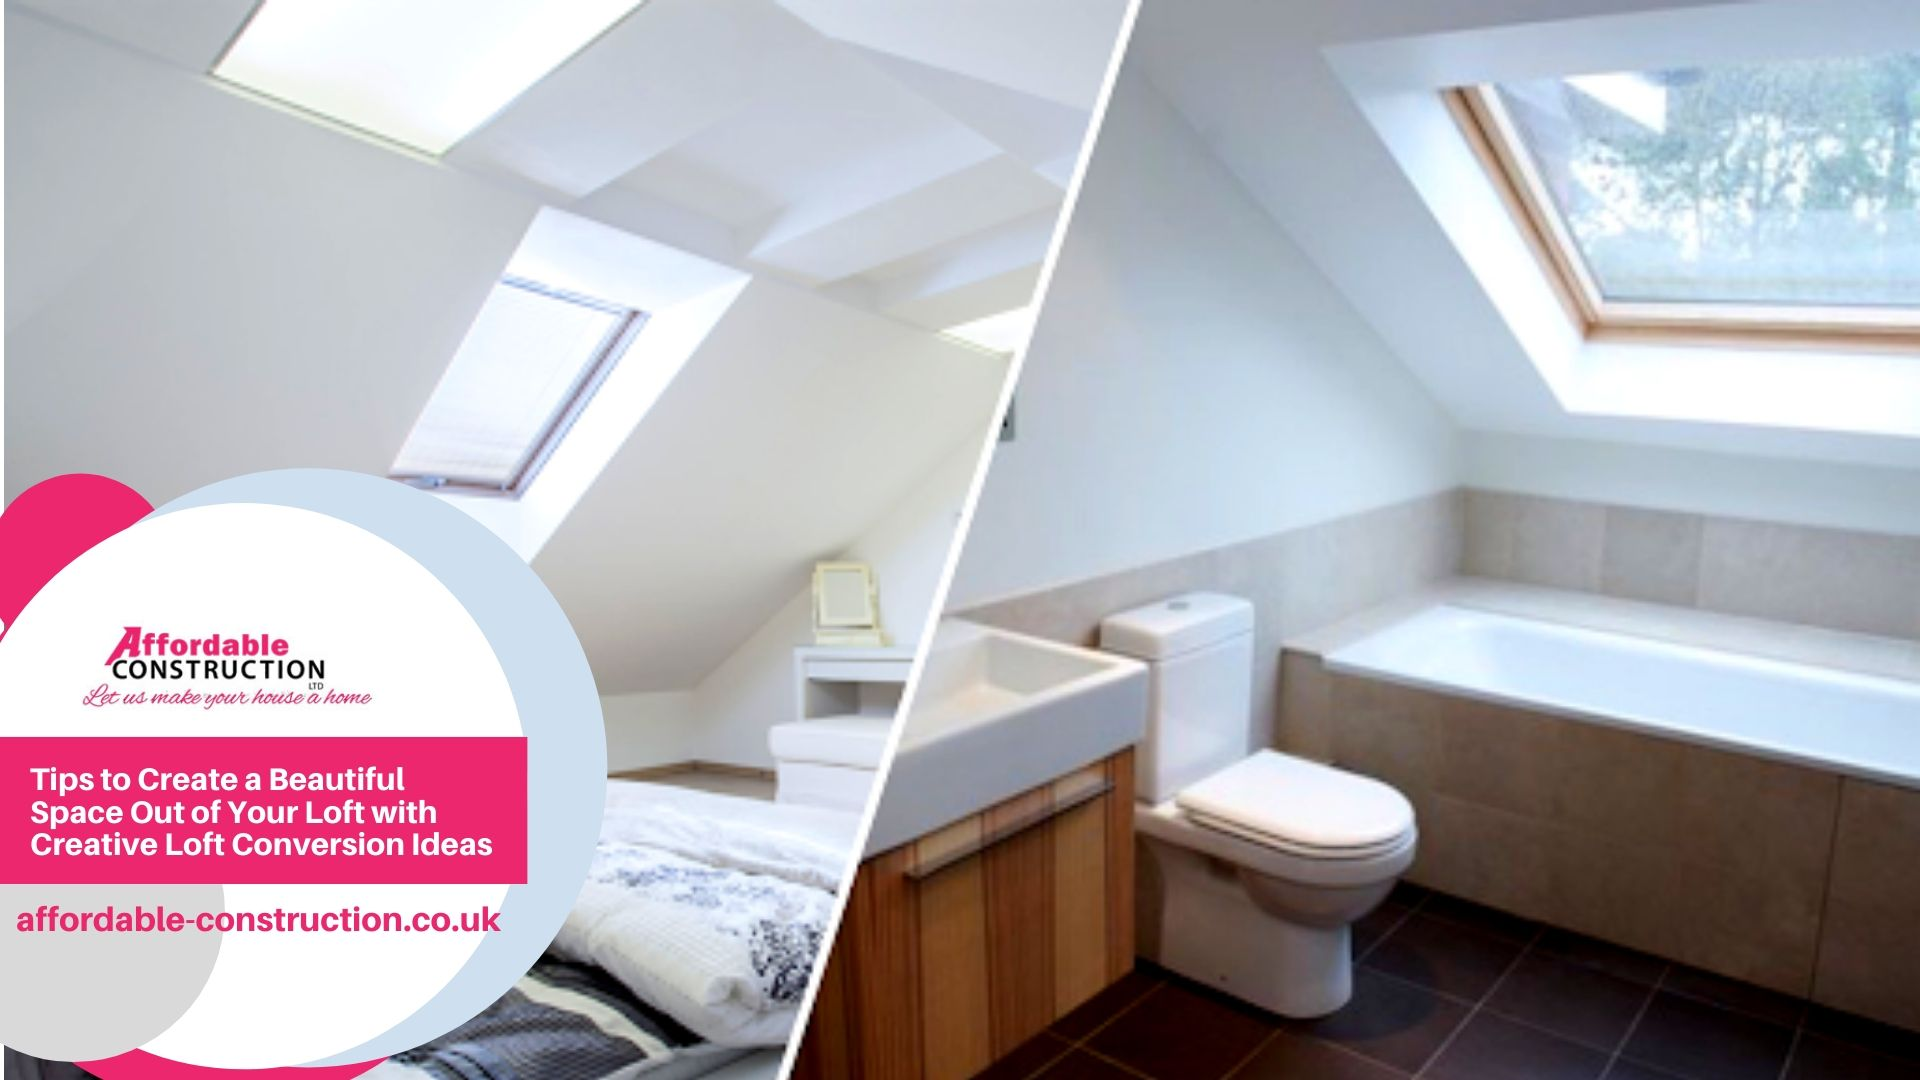 Tips to Create a Beautiful Space Out of Your Loft with Creative Loft Conversion Ideas